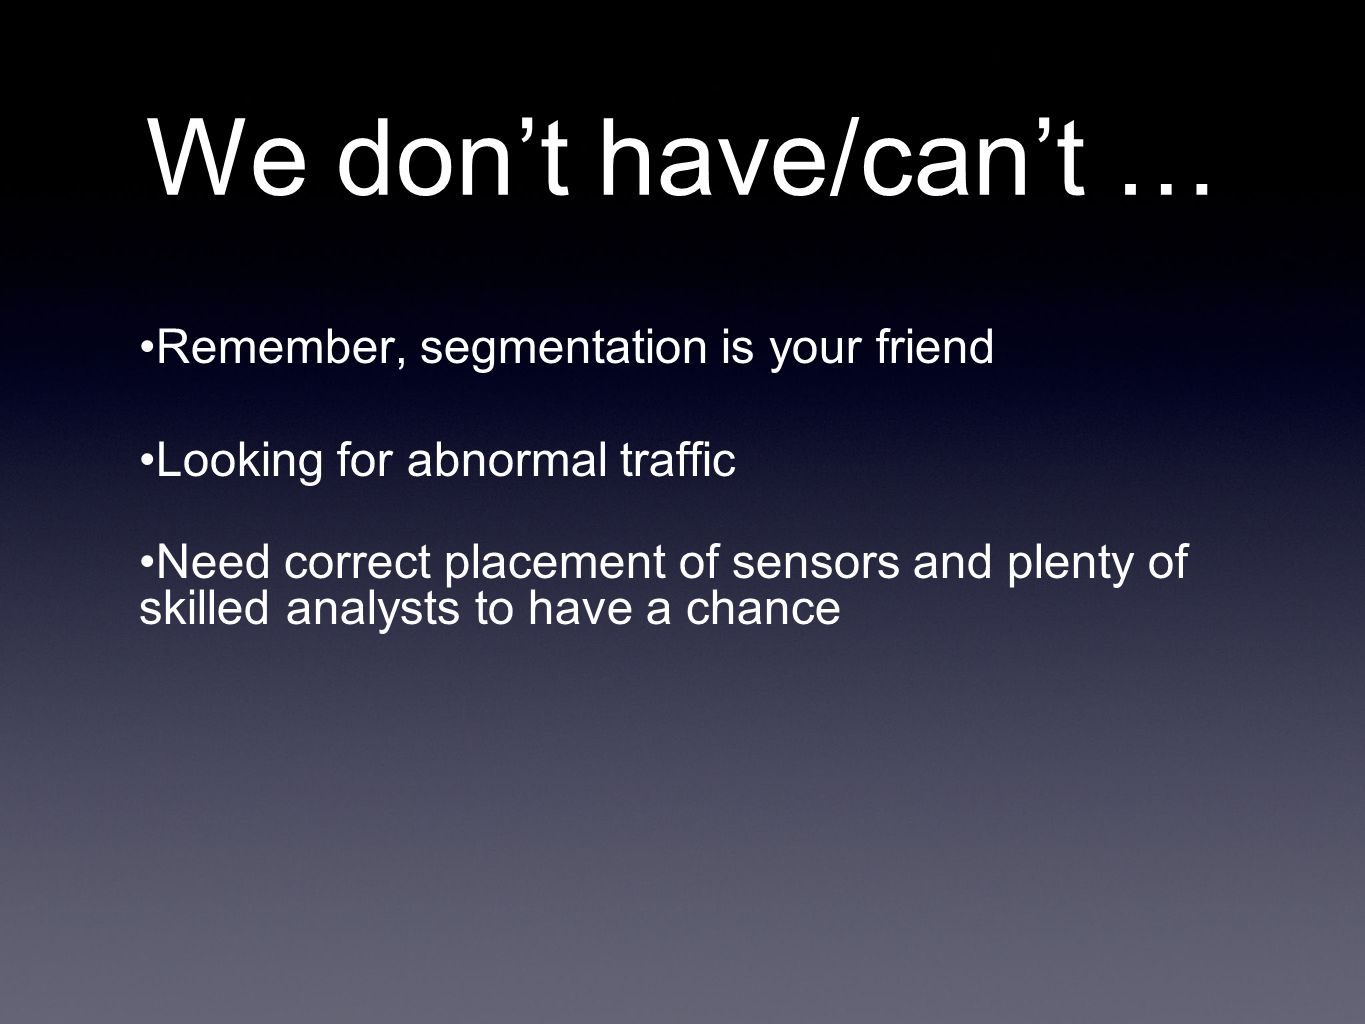 We don't have/can't … Remember, segmentation is your friend Looking for abnormal traffic Need correct placement of sensors and plenty of skilled analysts to have a chance